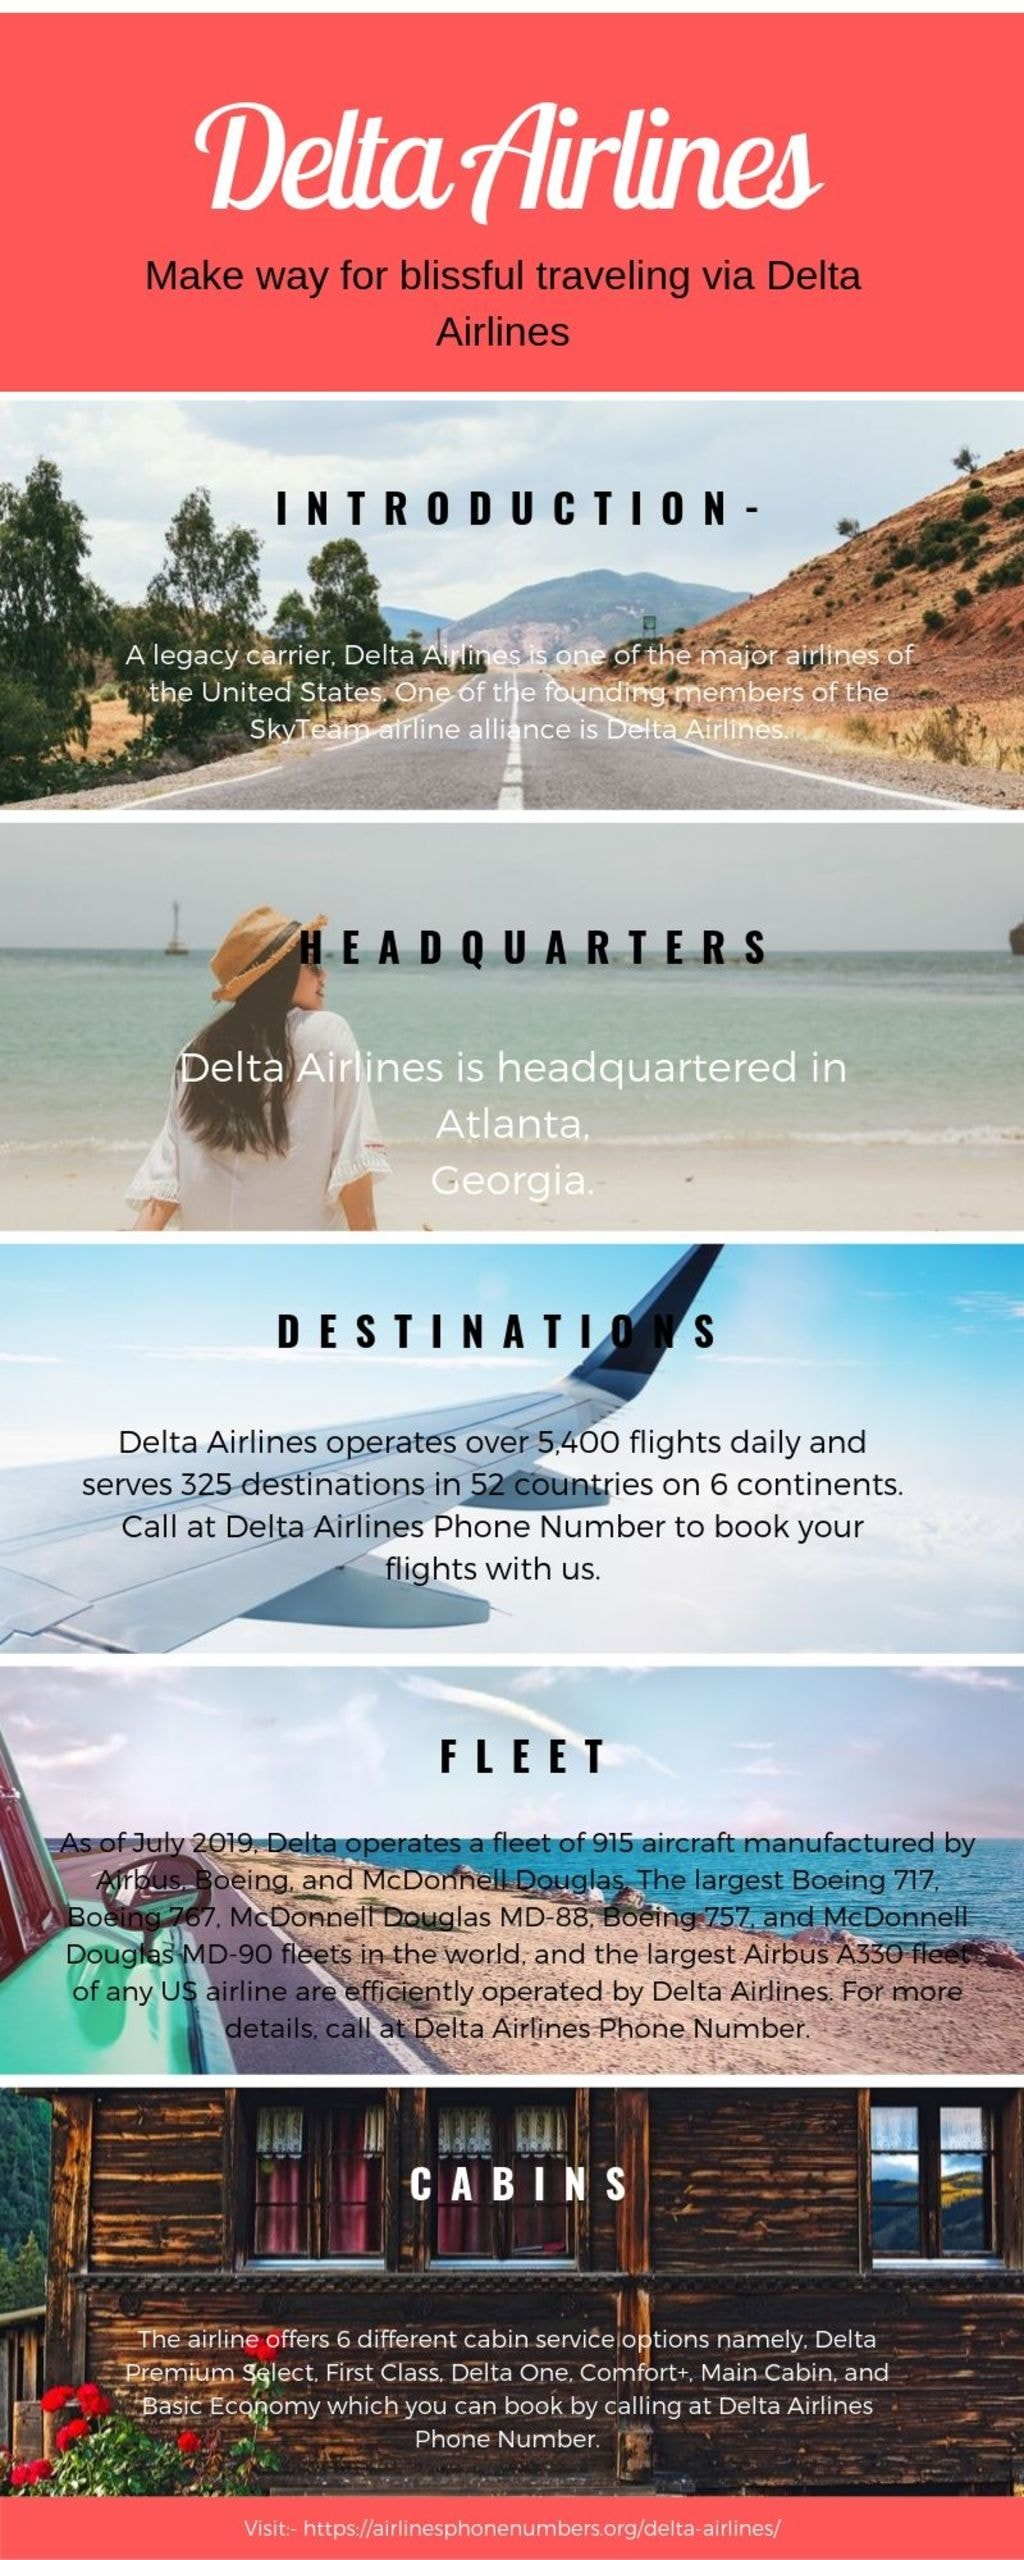 Make way for blissful traveling via Delta Airlines via Harry Thomas